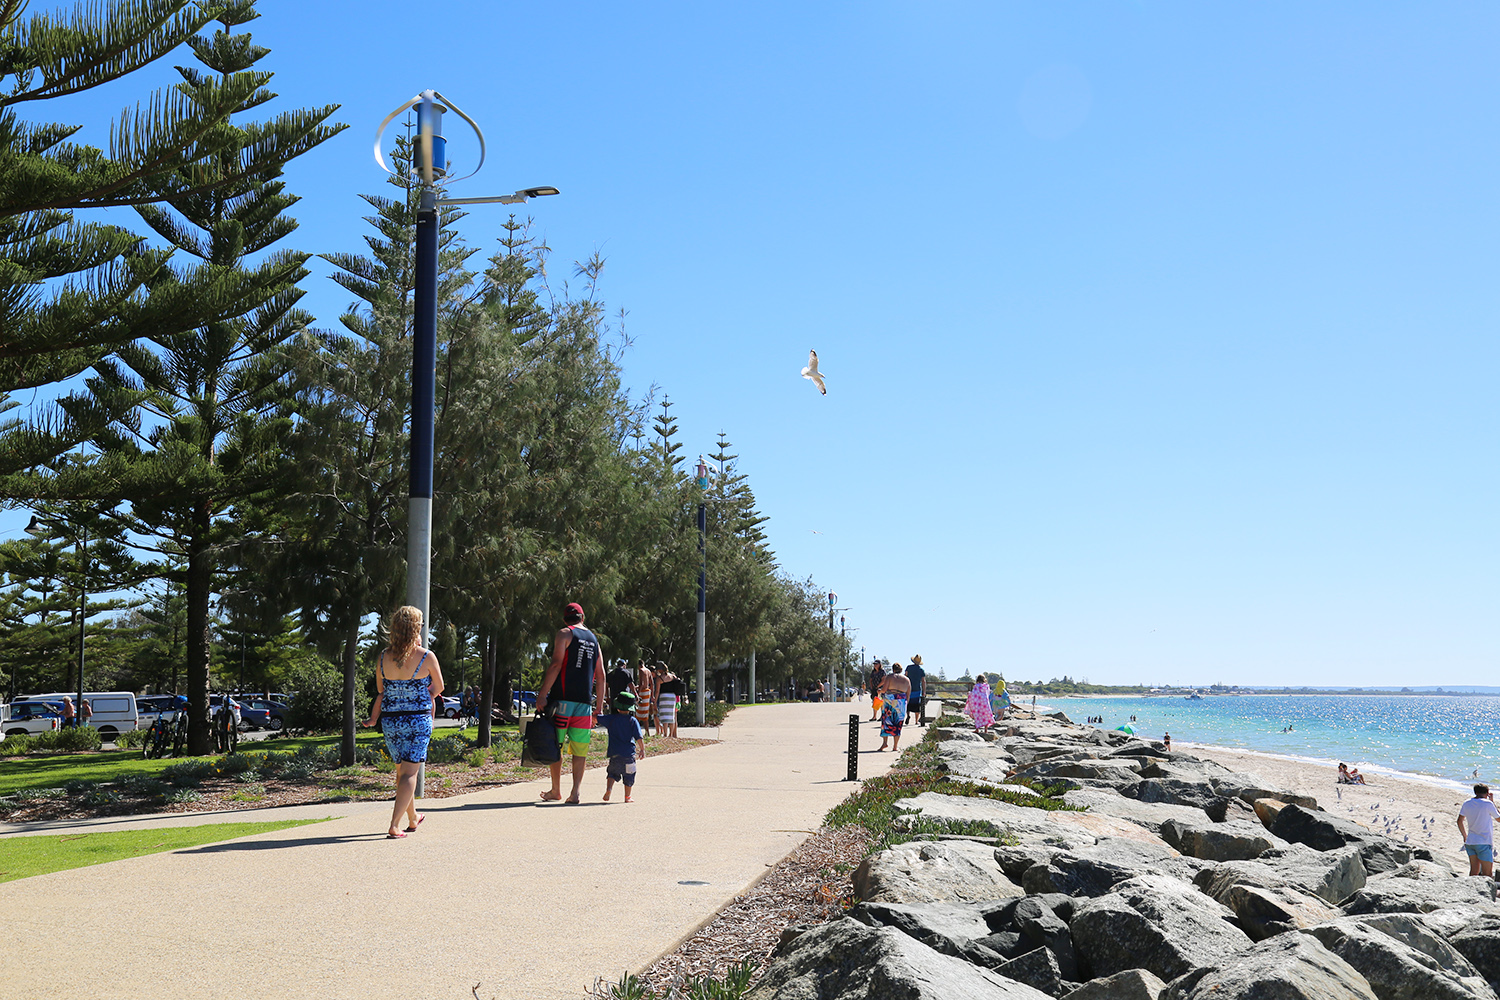 A view of people walking on the Busselton foreshore